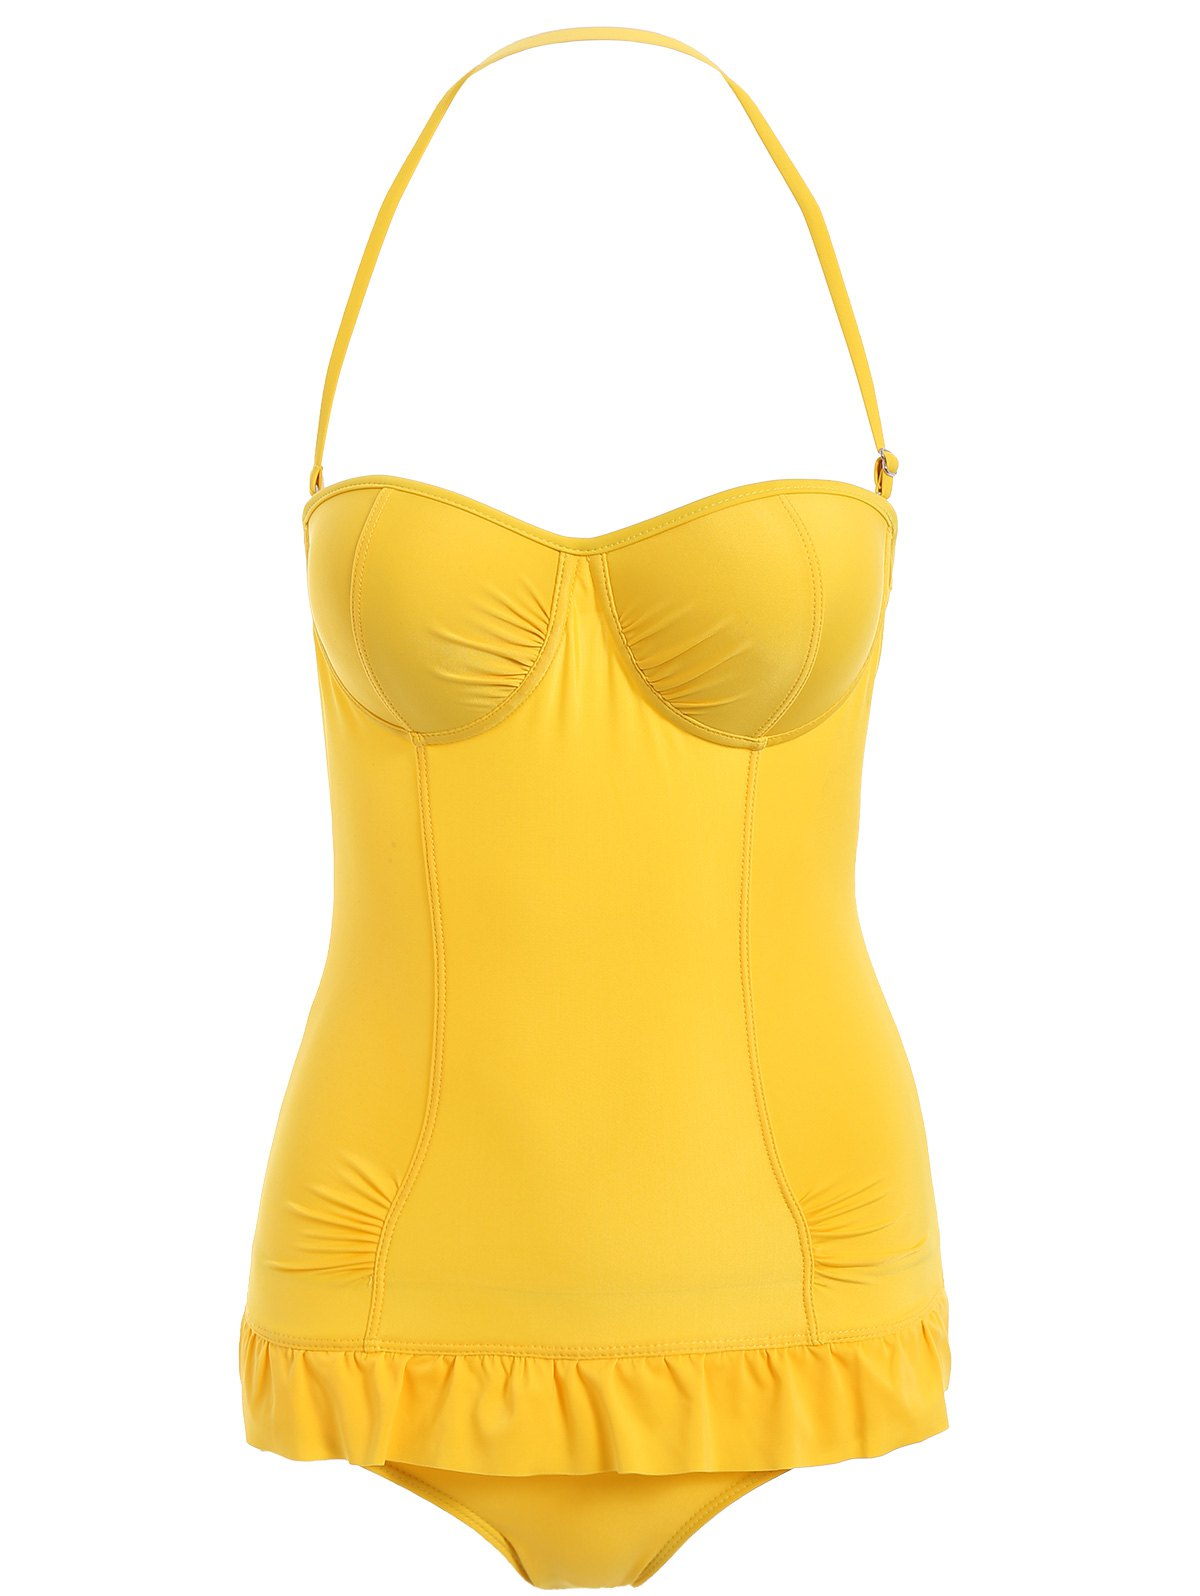 Halterneck Ruffled Solid Color One-Piece Swimsuit For Women - YELLOW S